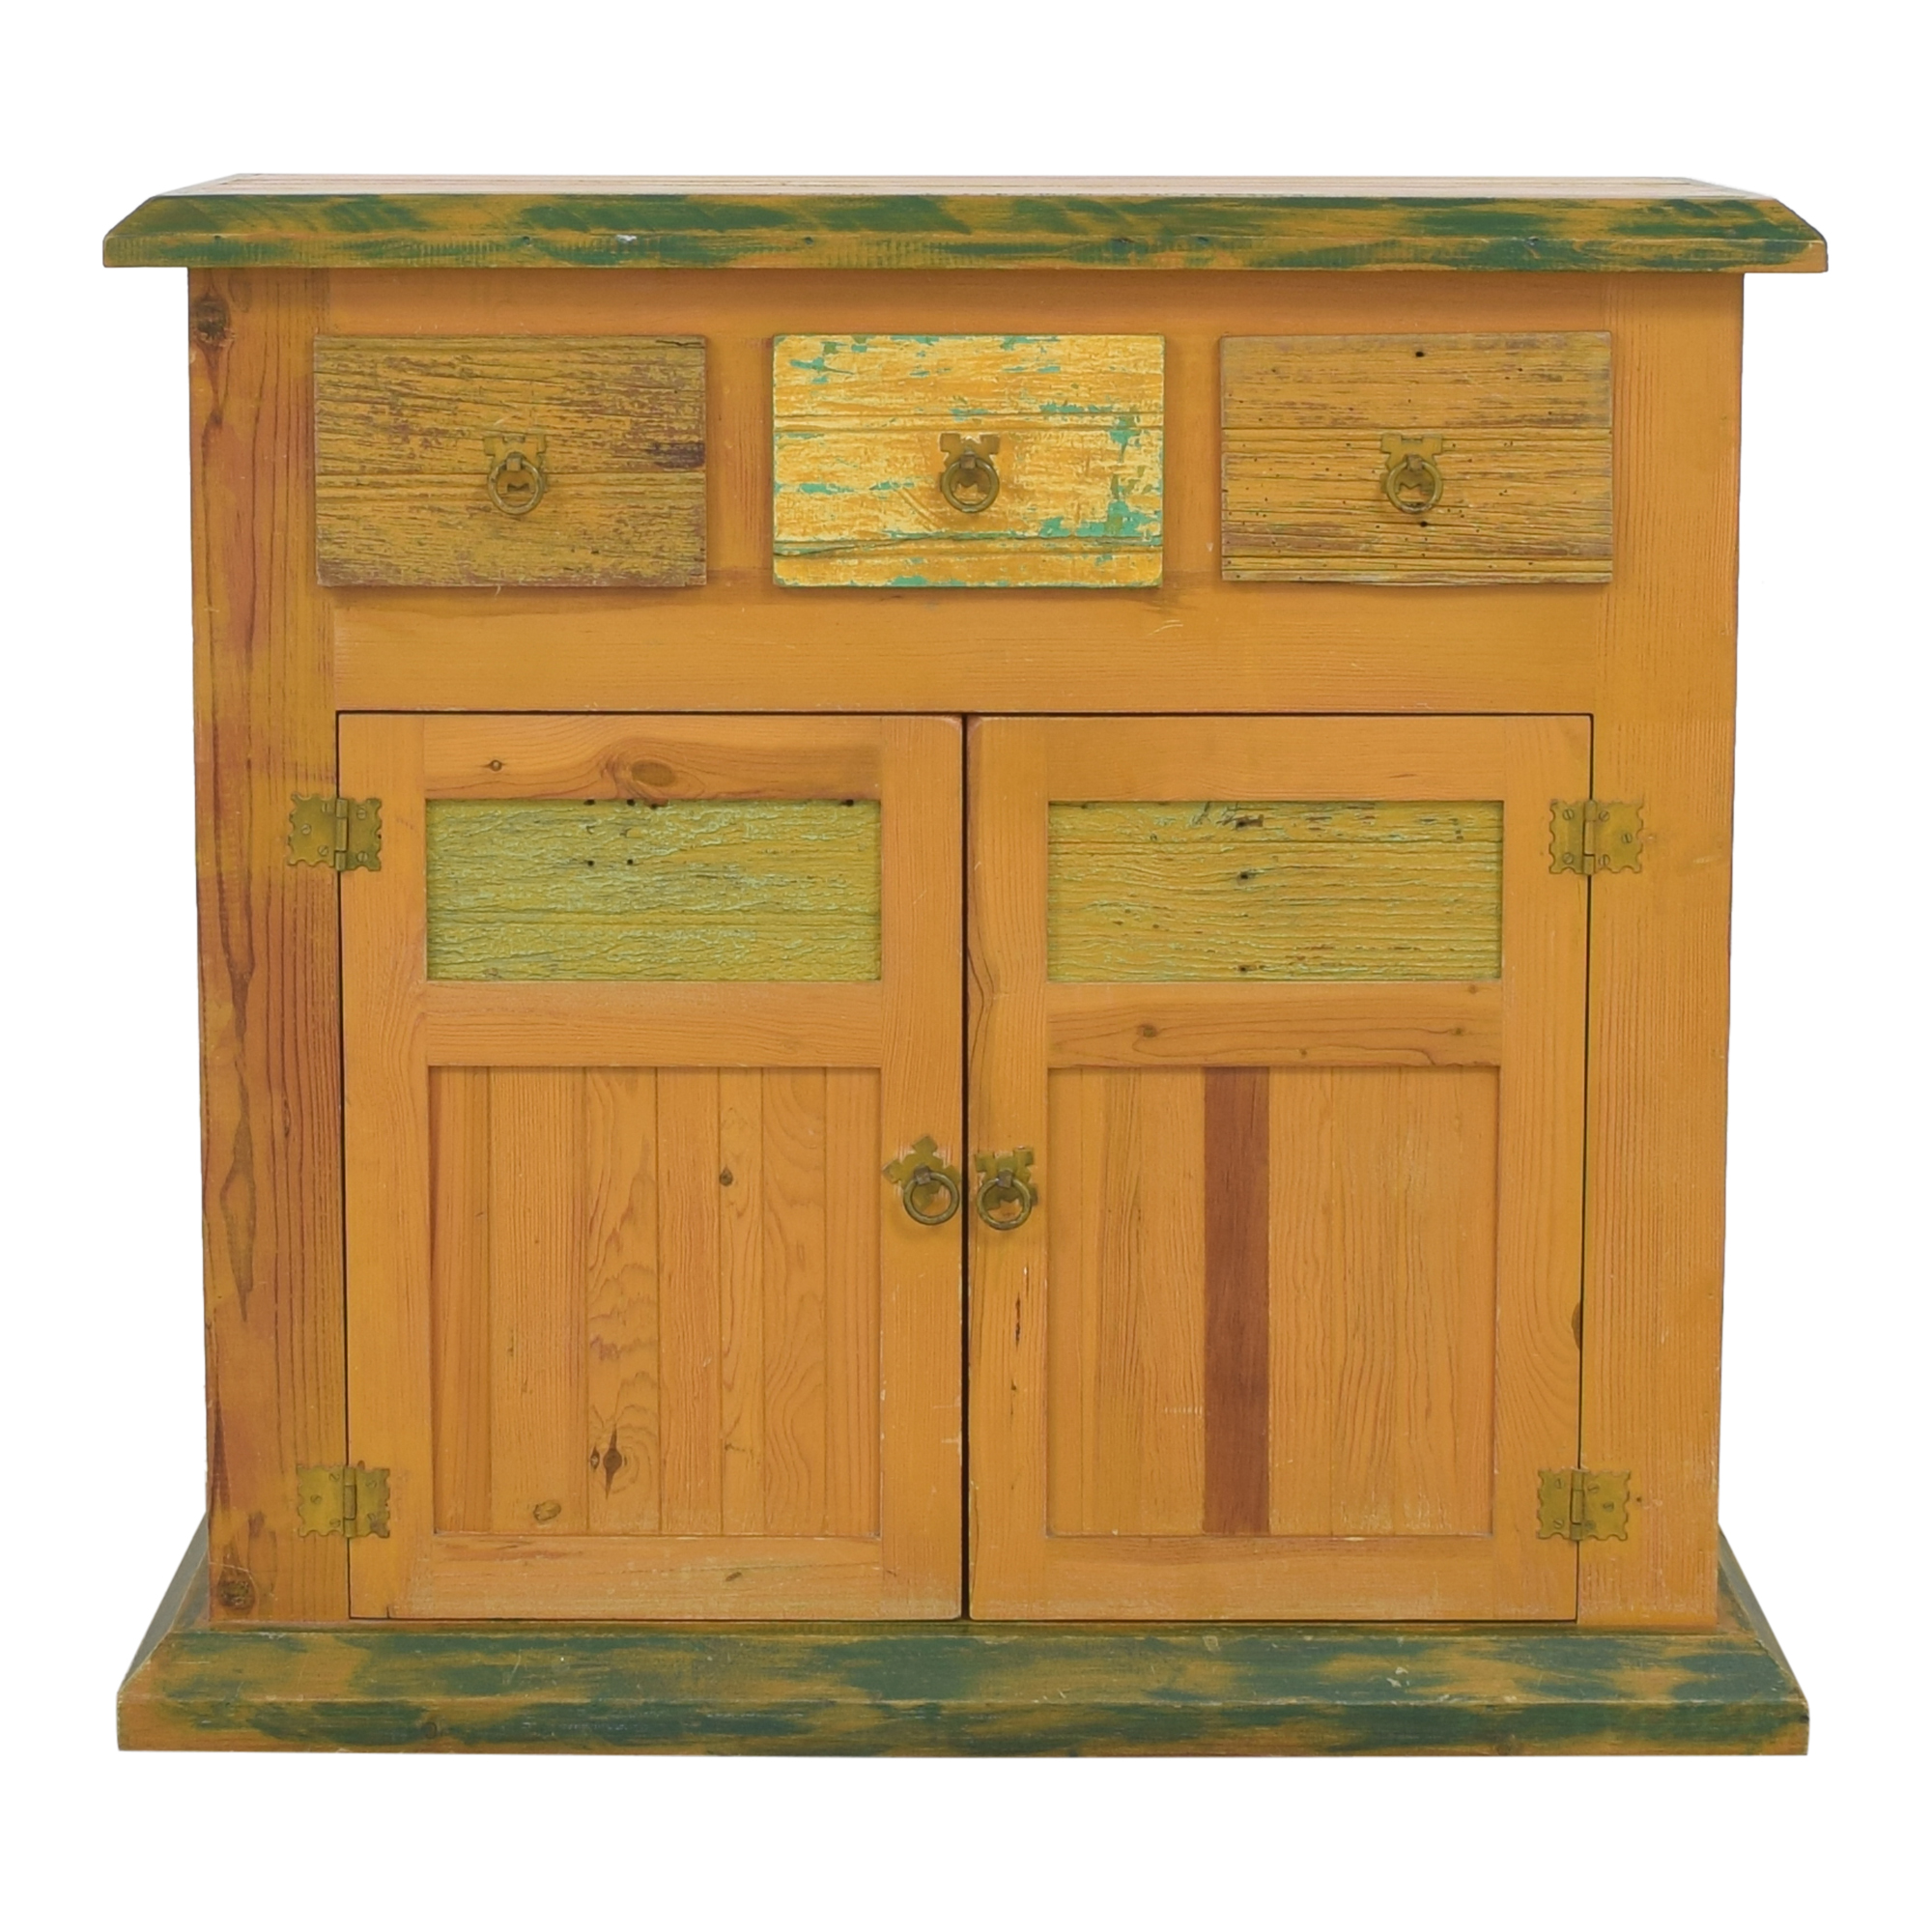 Vintage Style Distressed Cabinet / Storage